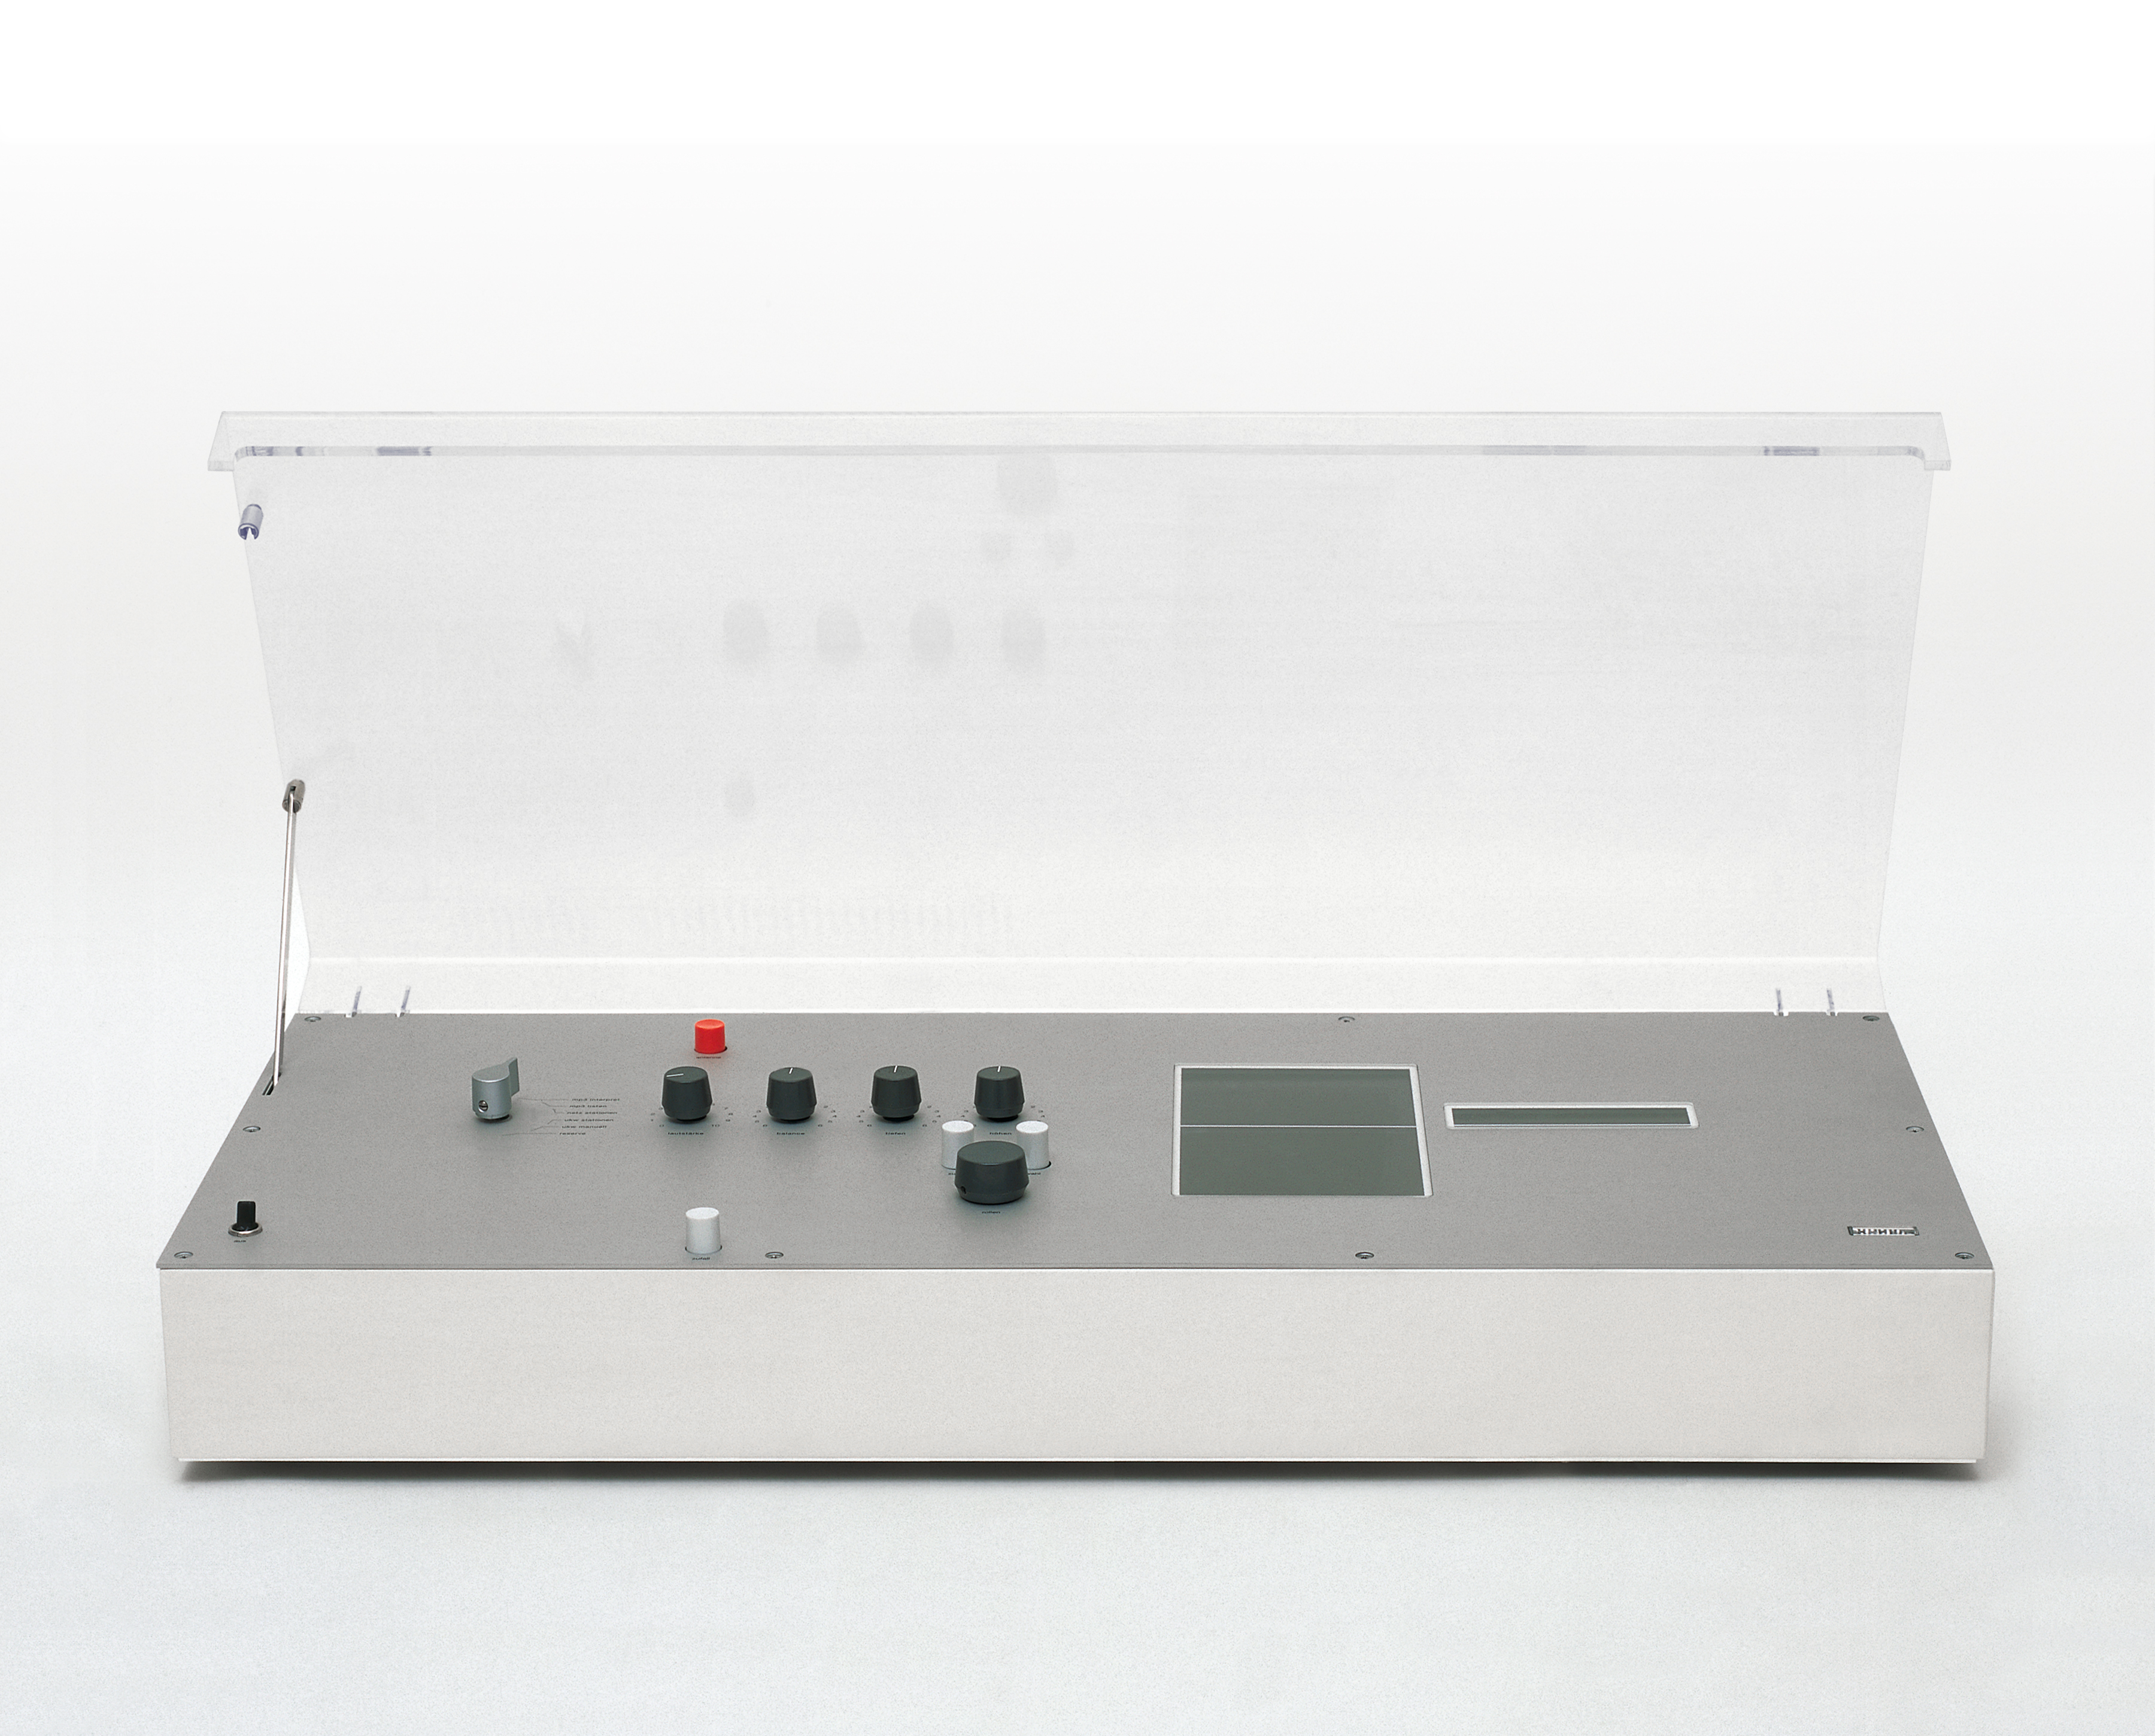 dieter rams on pinterest 45 records paul smith and. Black Bedroom Furniture Sets. Home Design Ideas